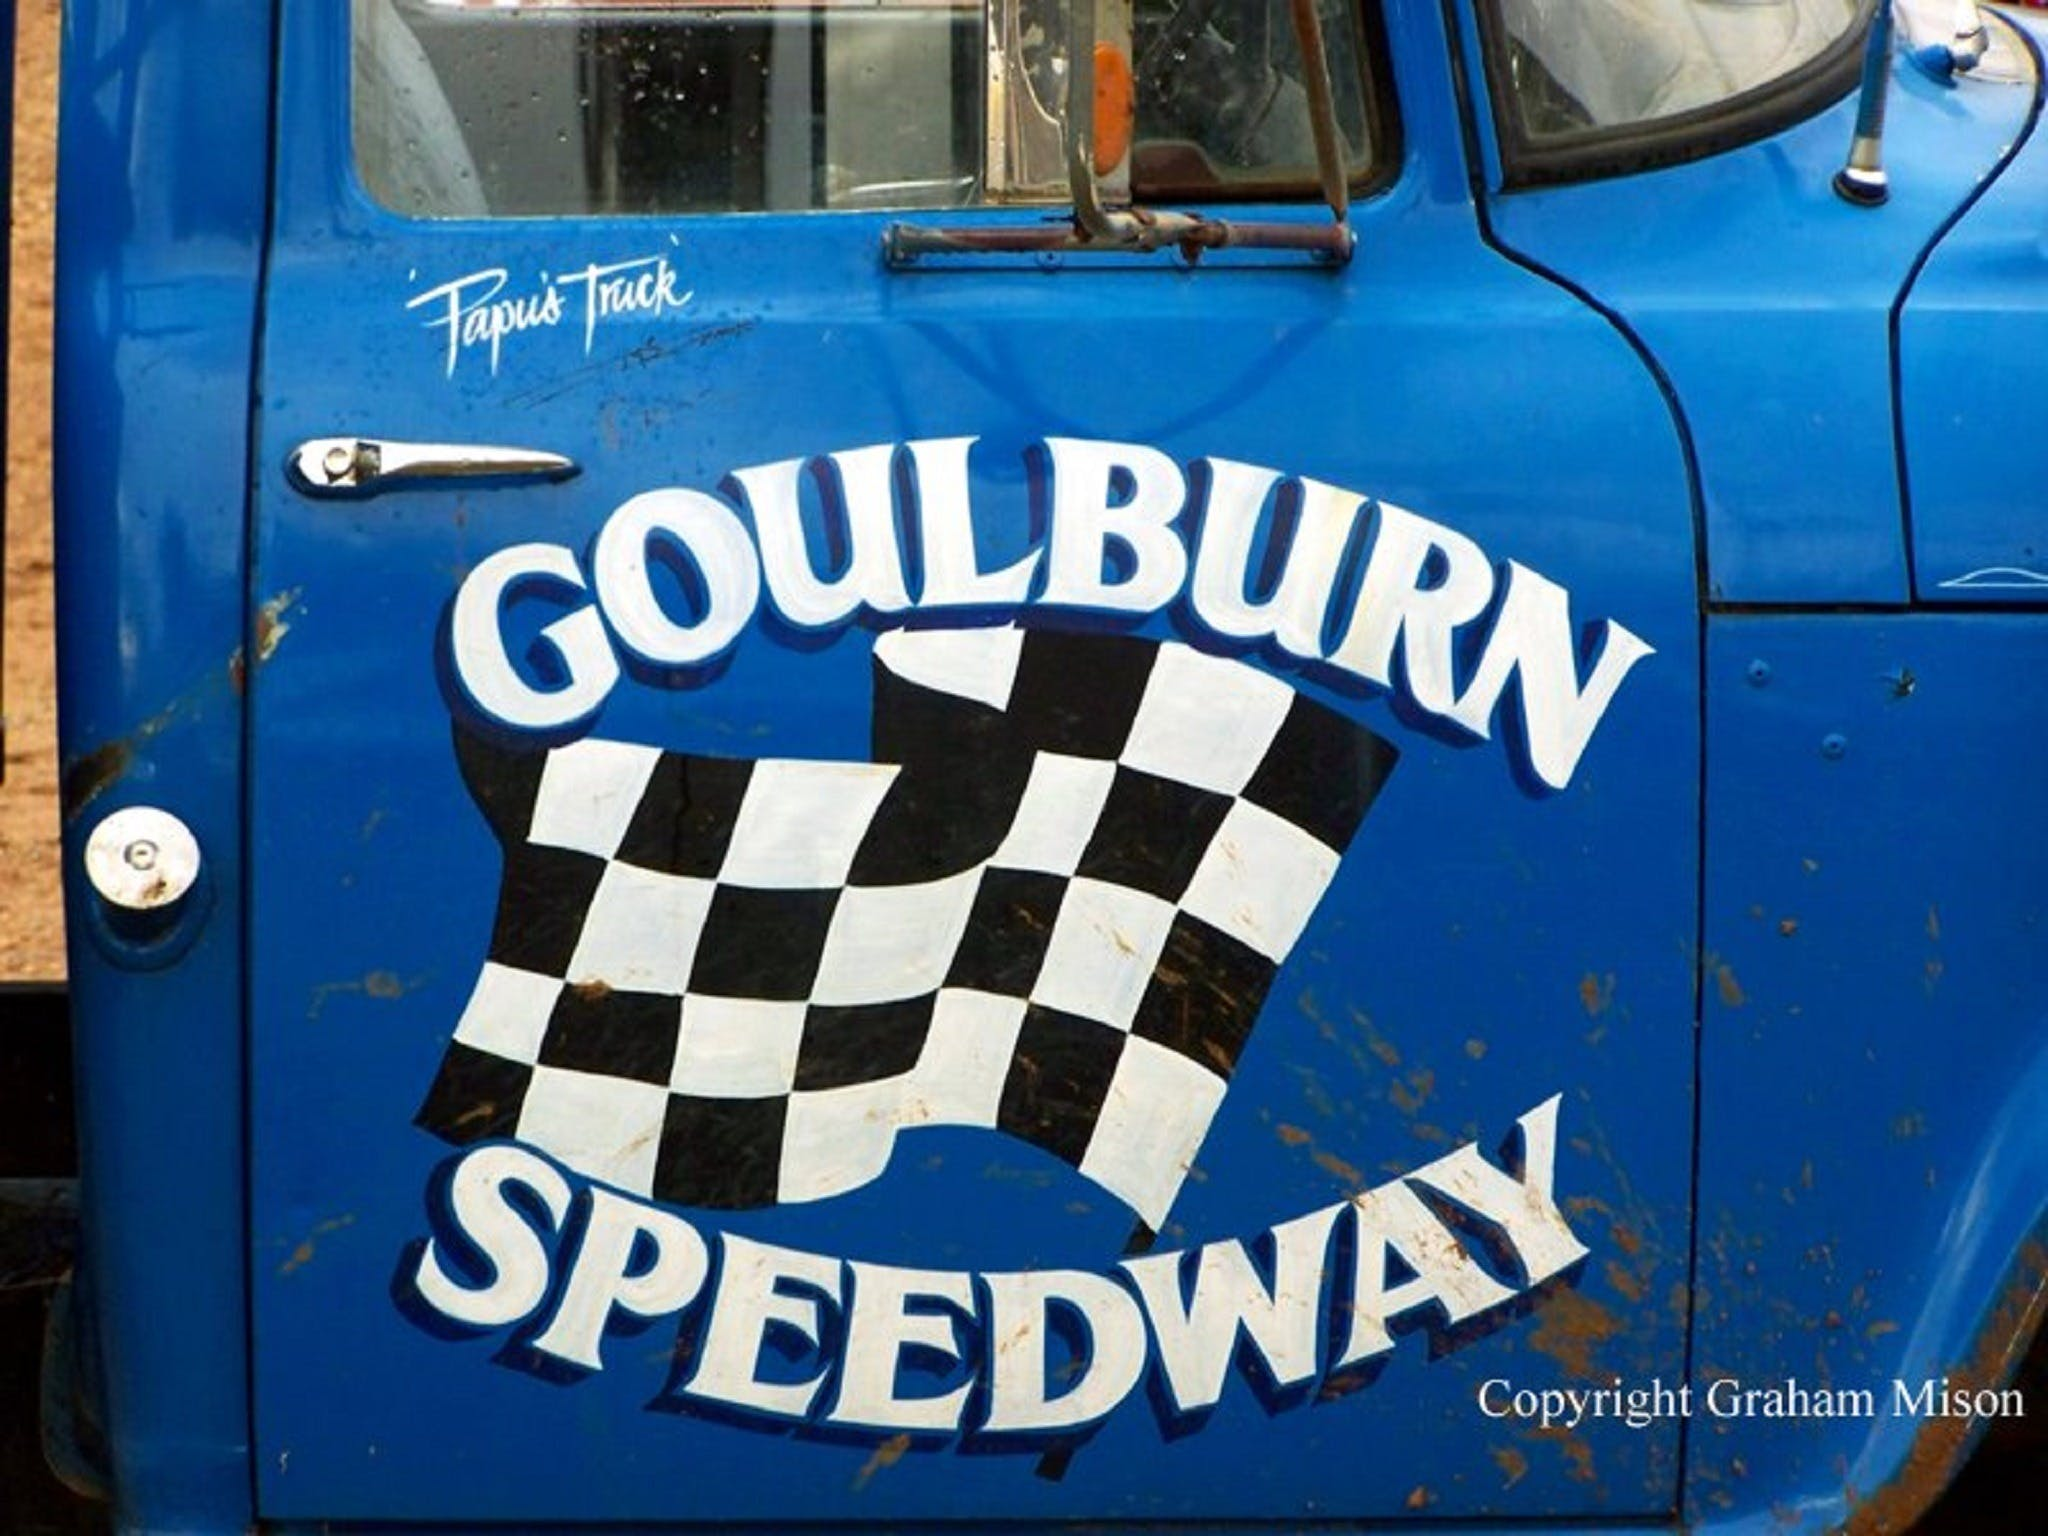 50 years of racing at Goulburn Speedway - WA Accommodation